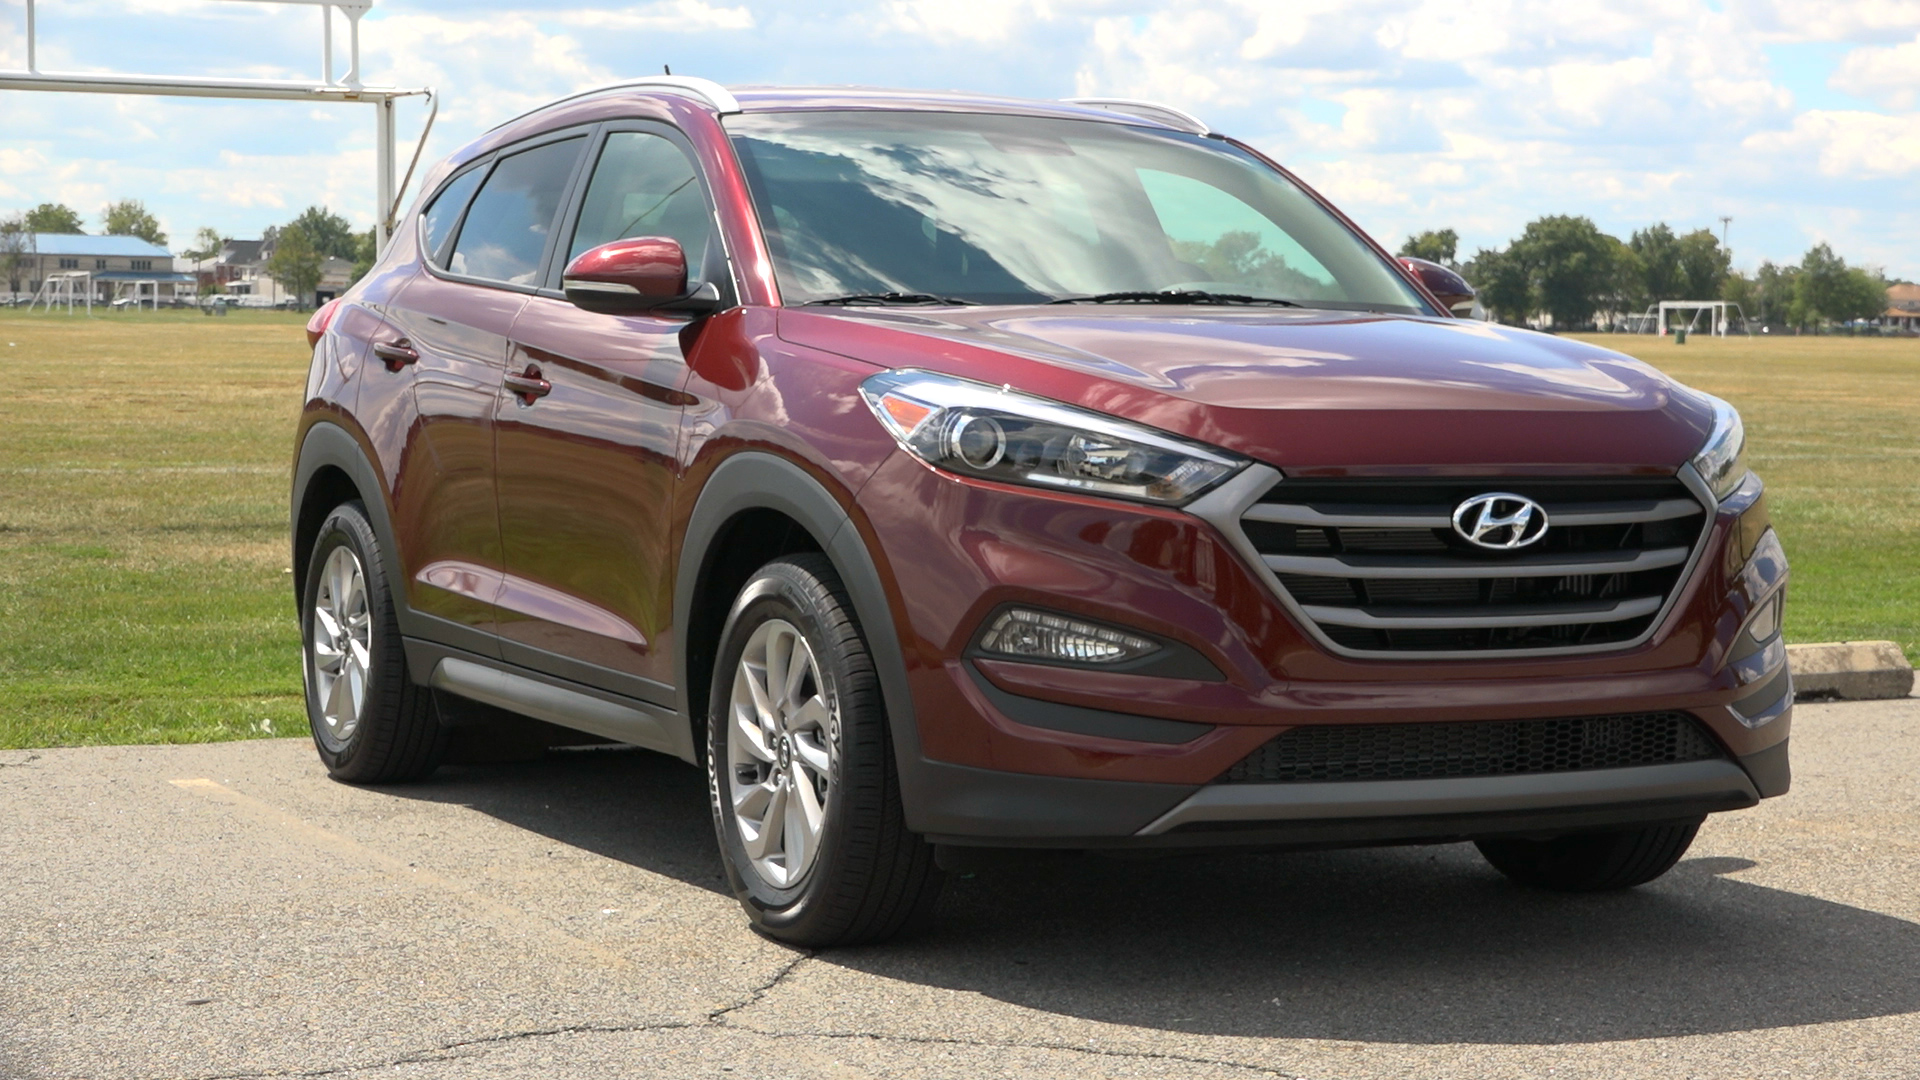 2016 hyundai tucson review it 39 s boring but that 39 s a good. Black Bedroom Furniture Sets. Home Design Ideas